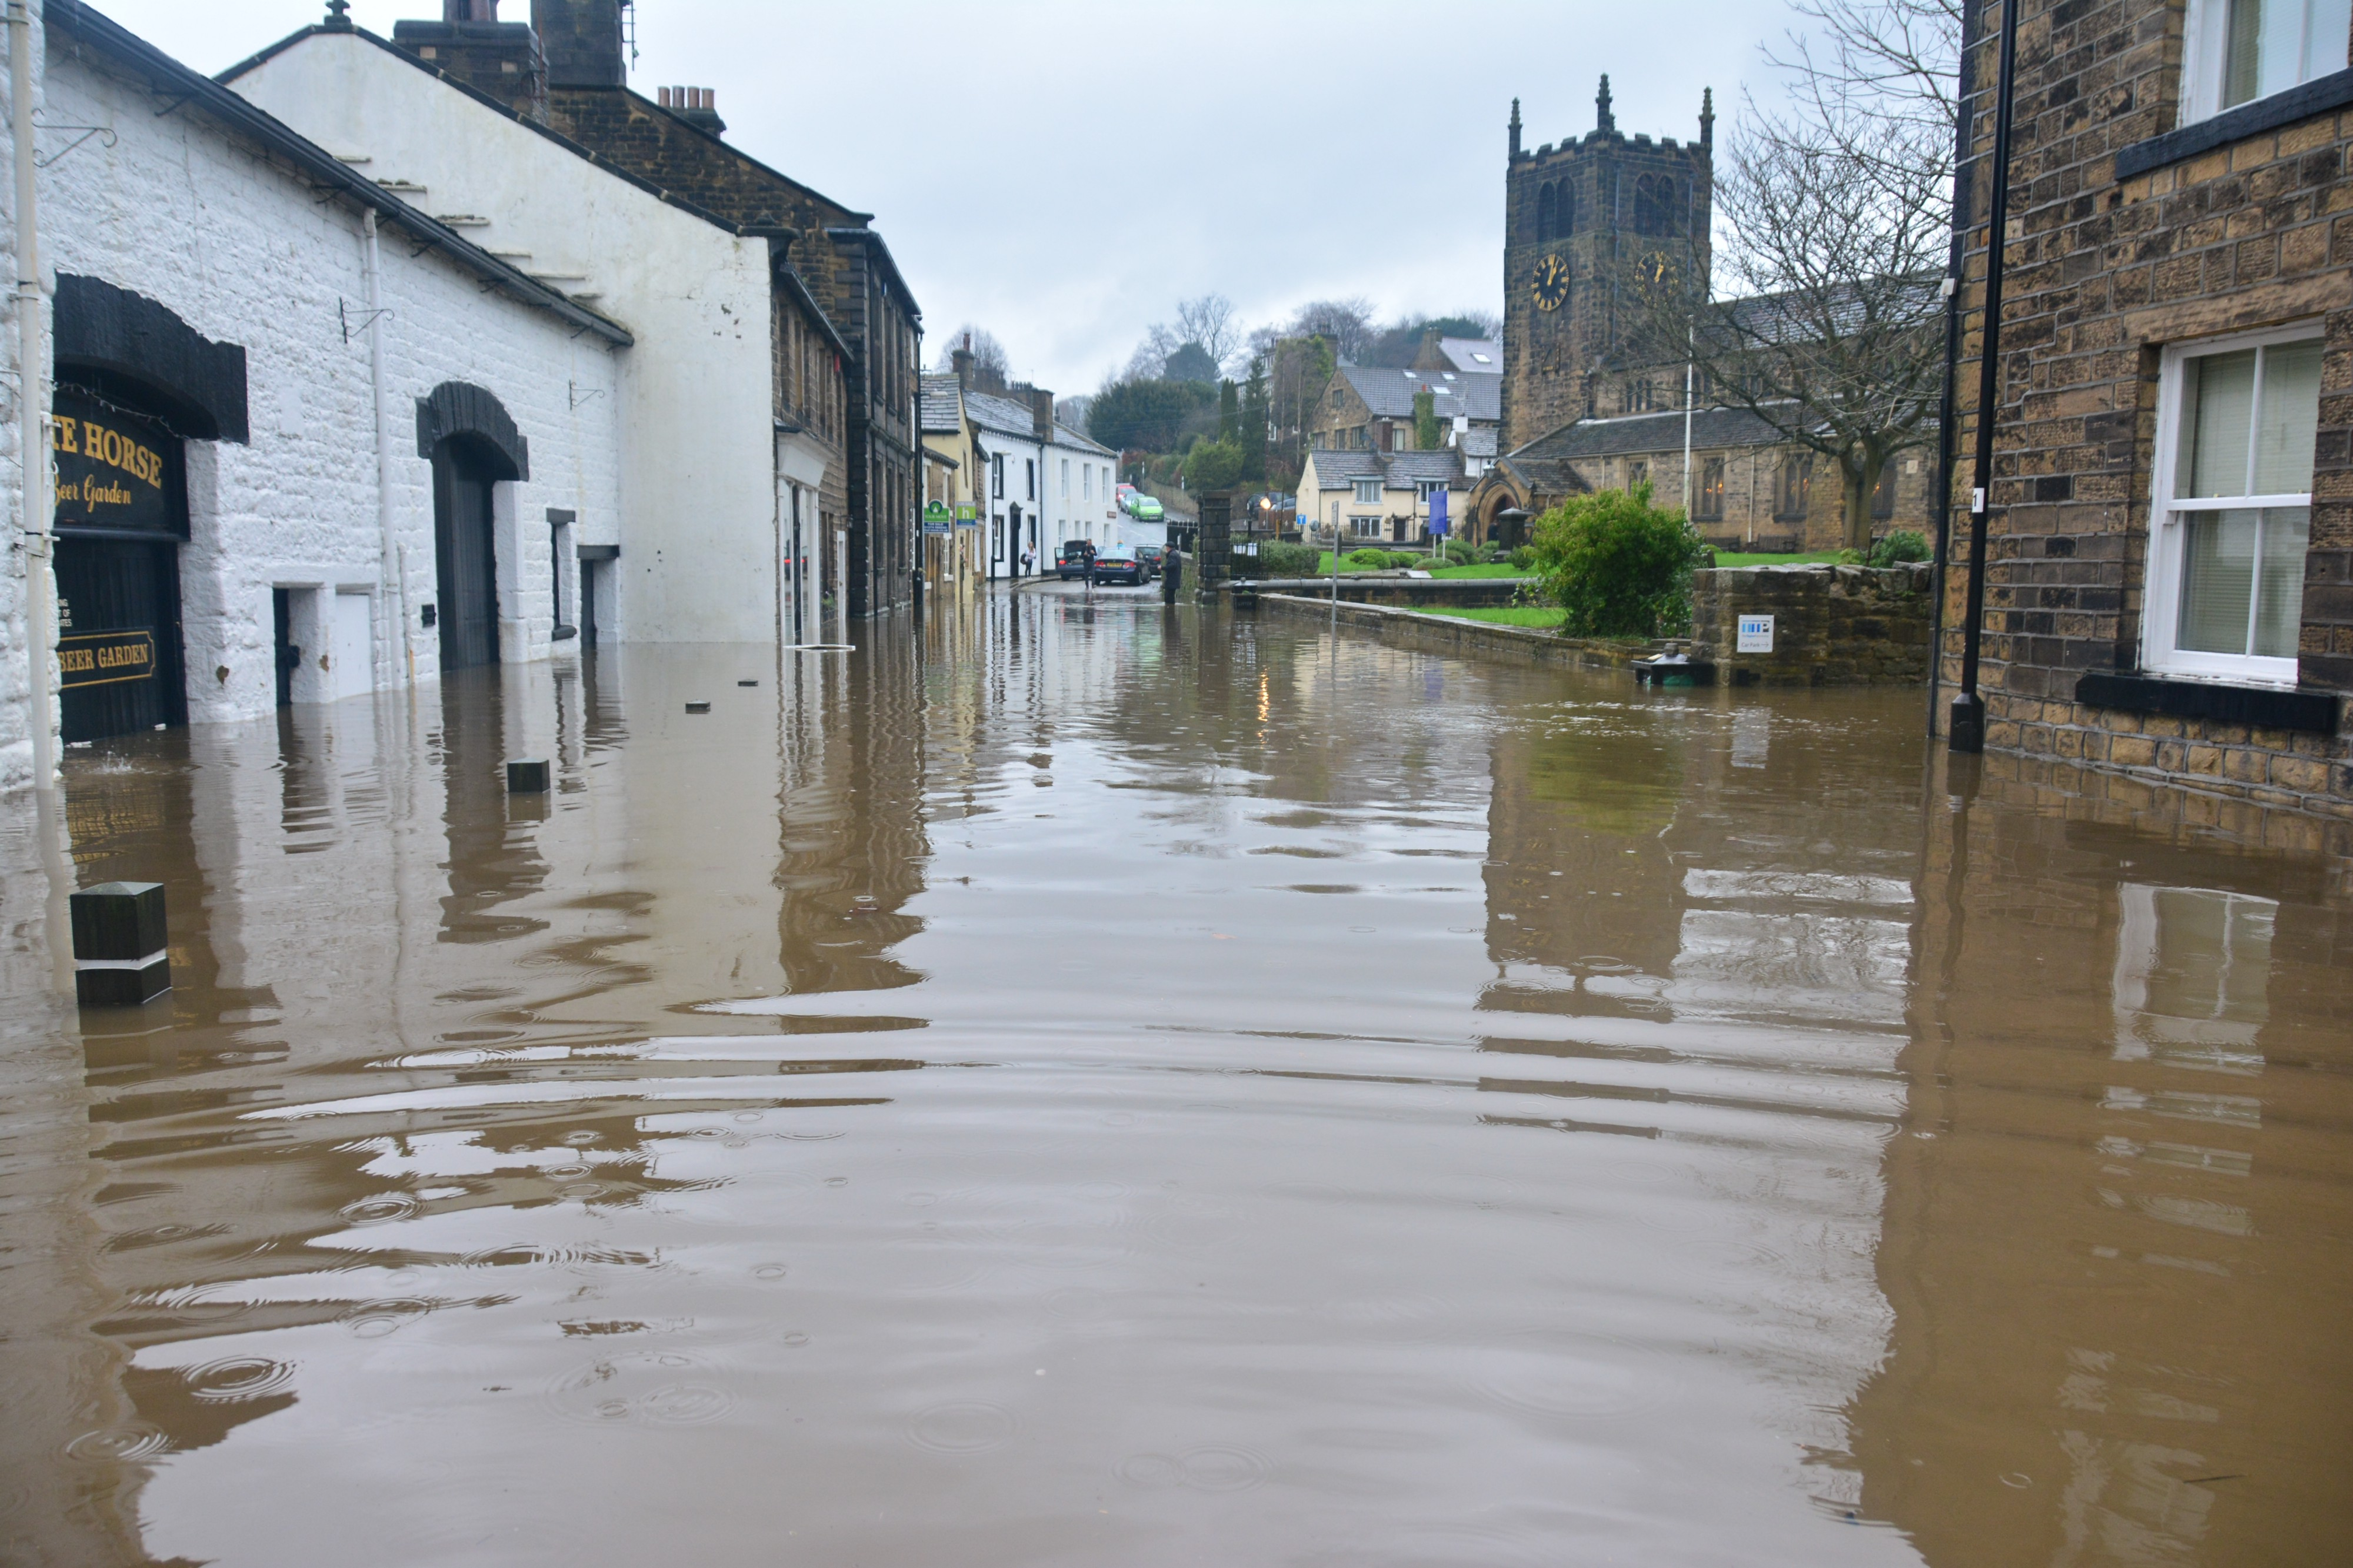 An image of a town with flooded streets.